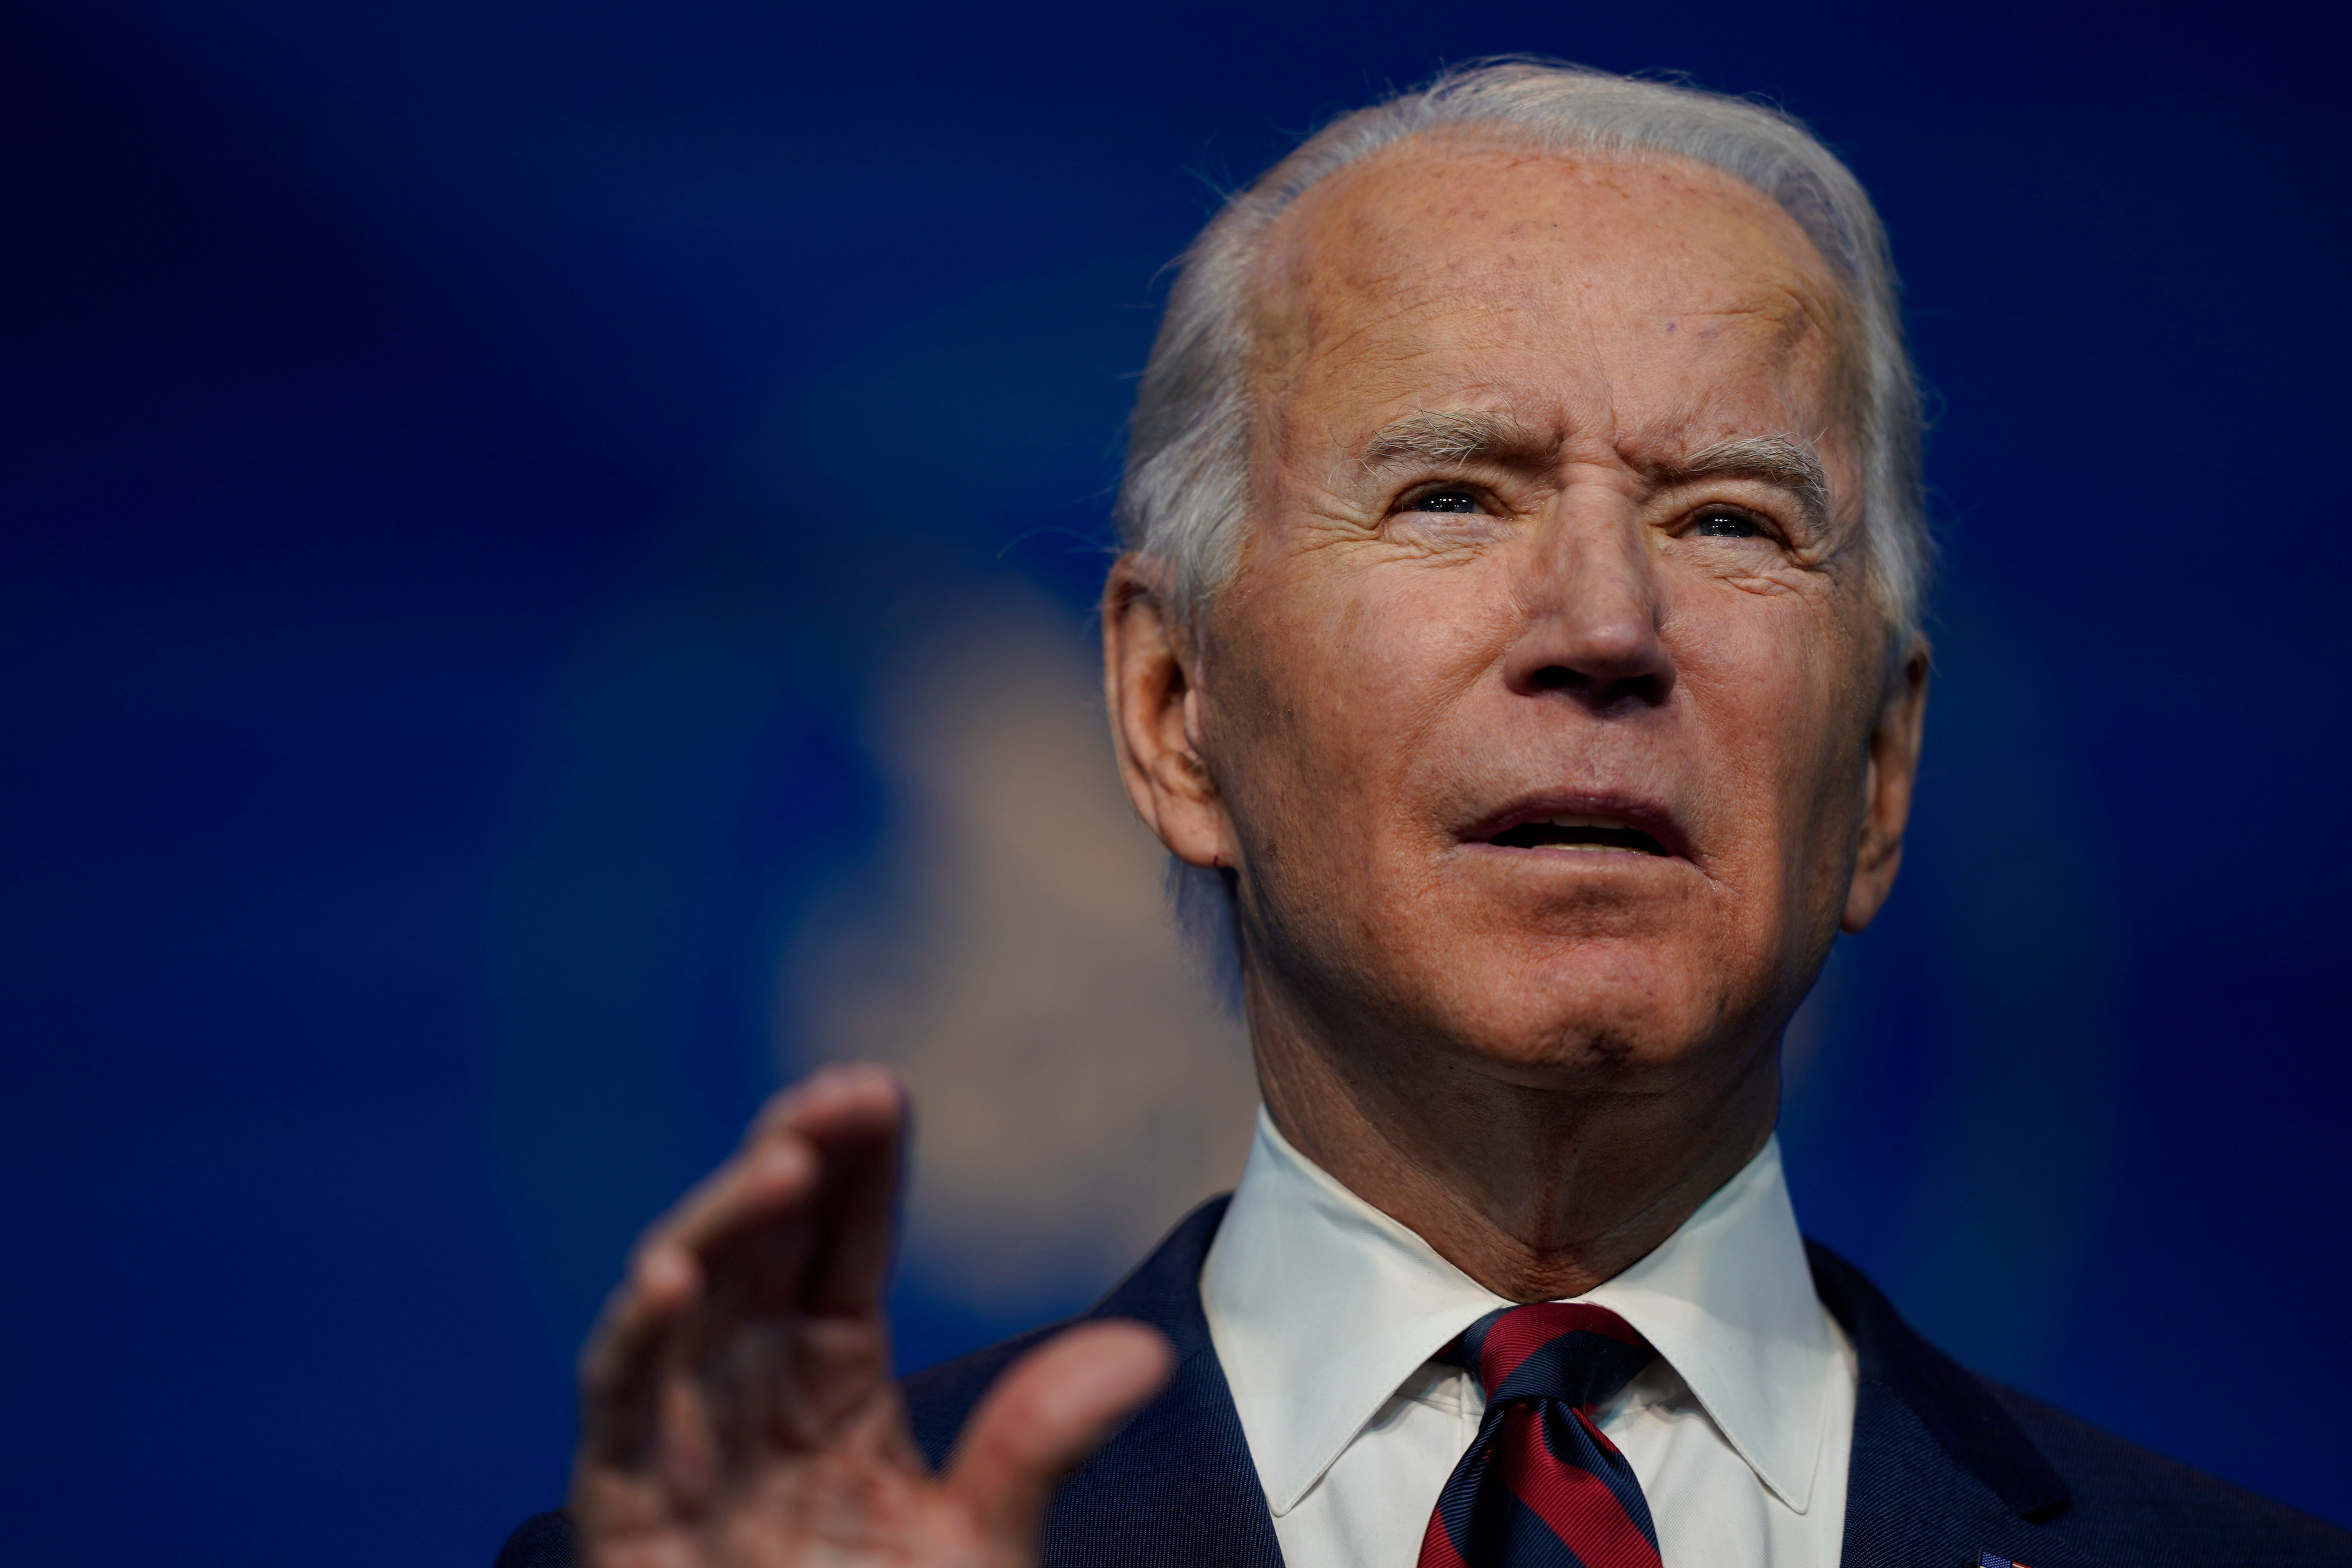 President-elect Joe Biden speaks at The Queen Theater in Wilmington Delaware, Saturday, Dec. 19, 2020, to announce climate and energy nominees and appointees.